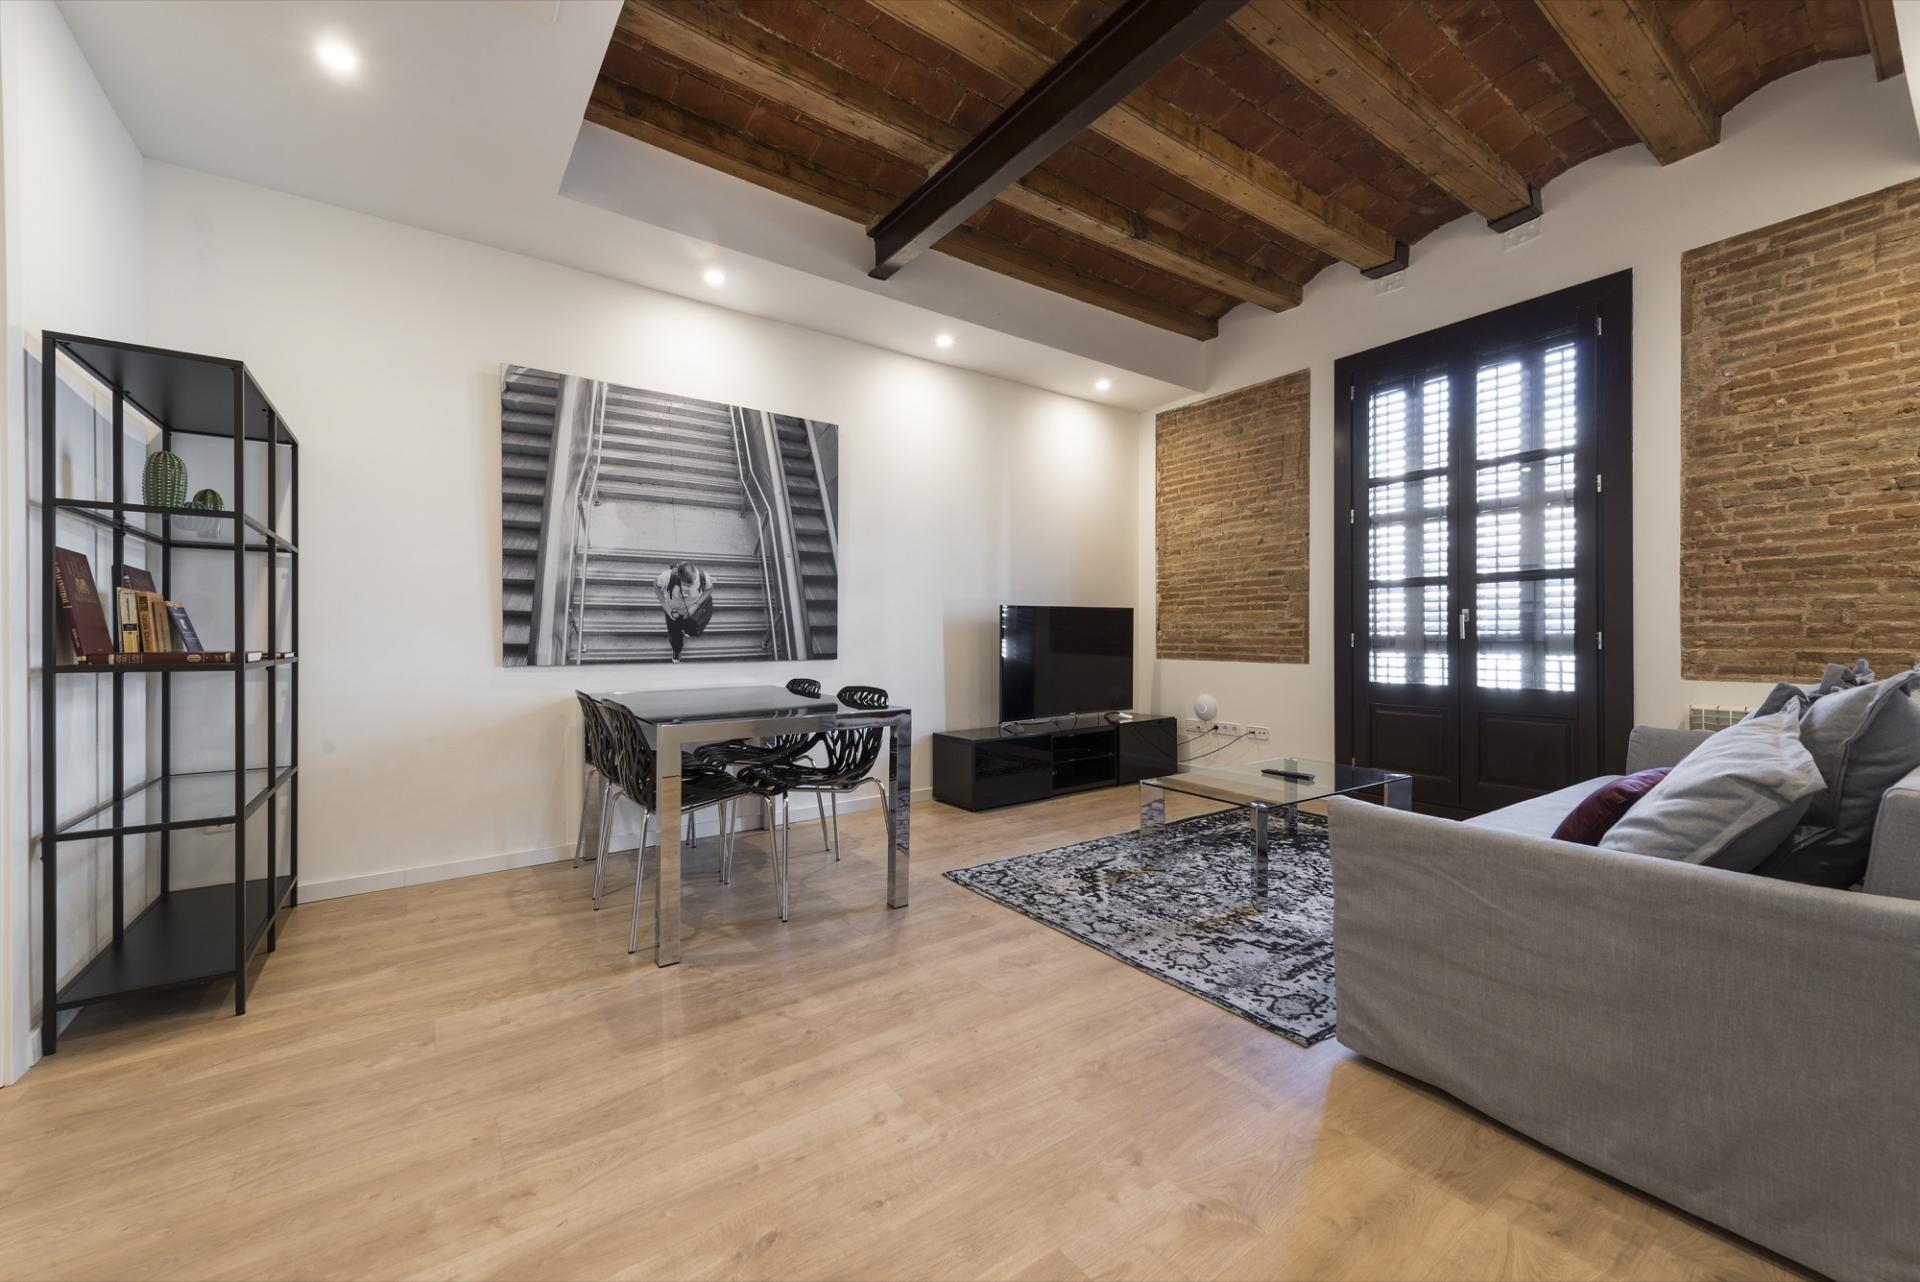 Dining area at Pelayo Suites, El Raval, Barcelona - Citybase Apartments